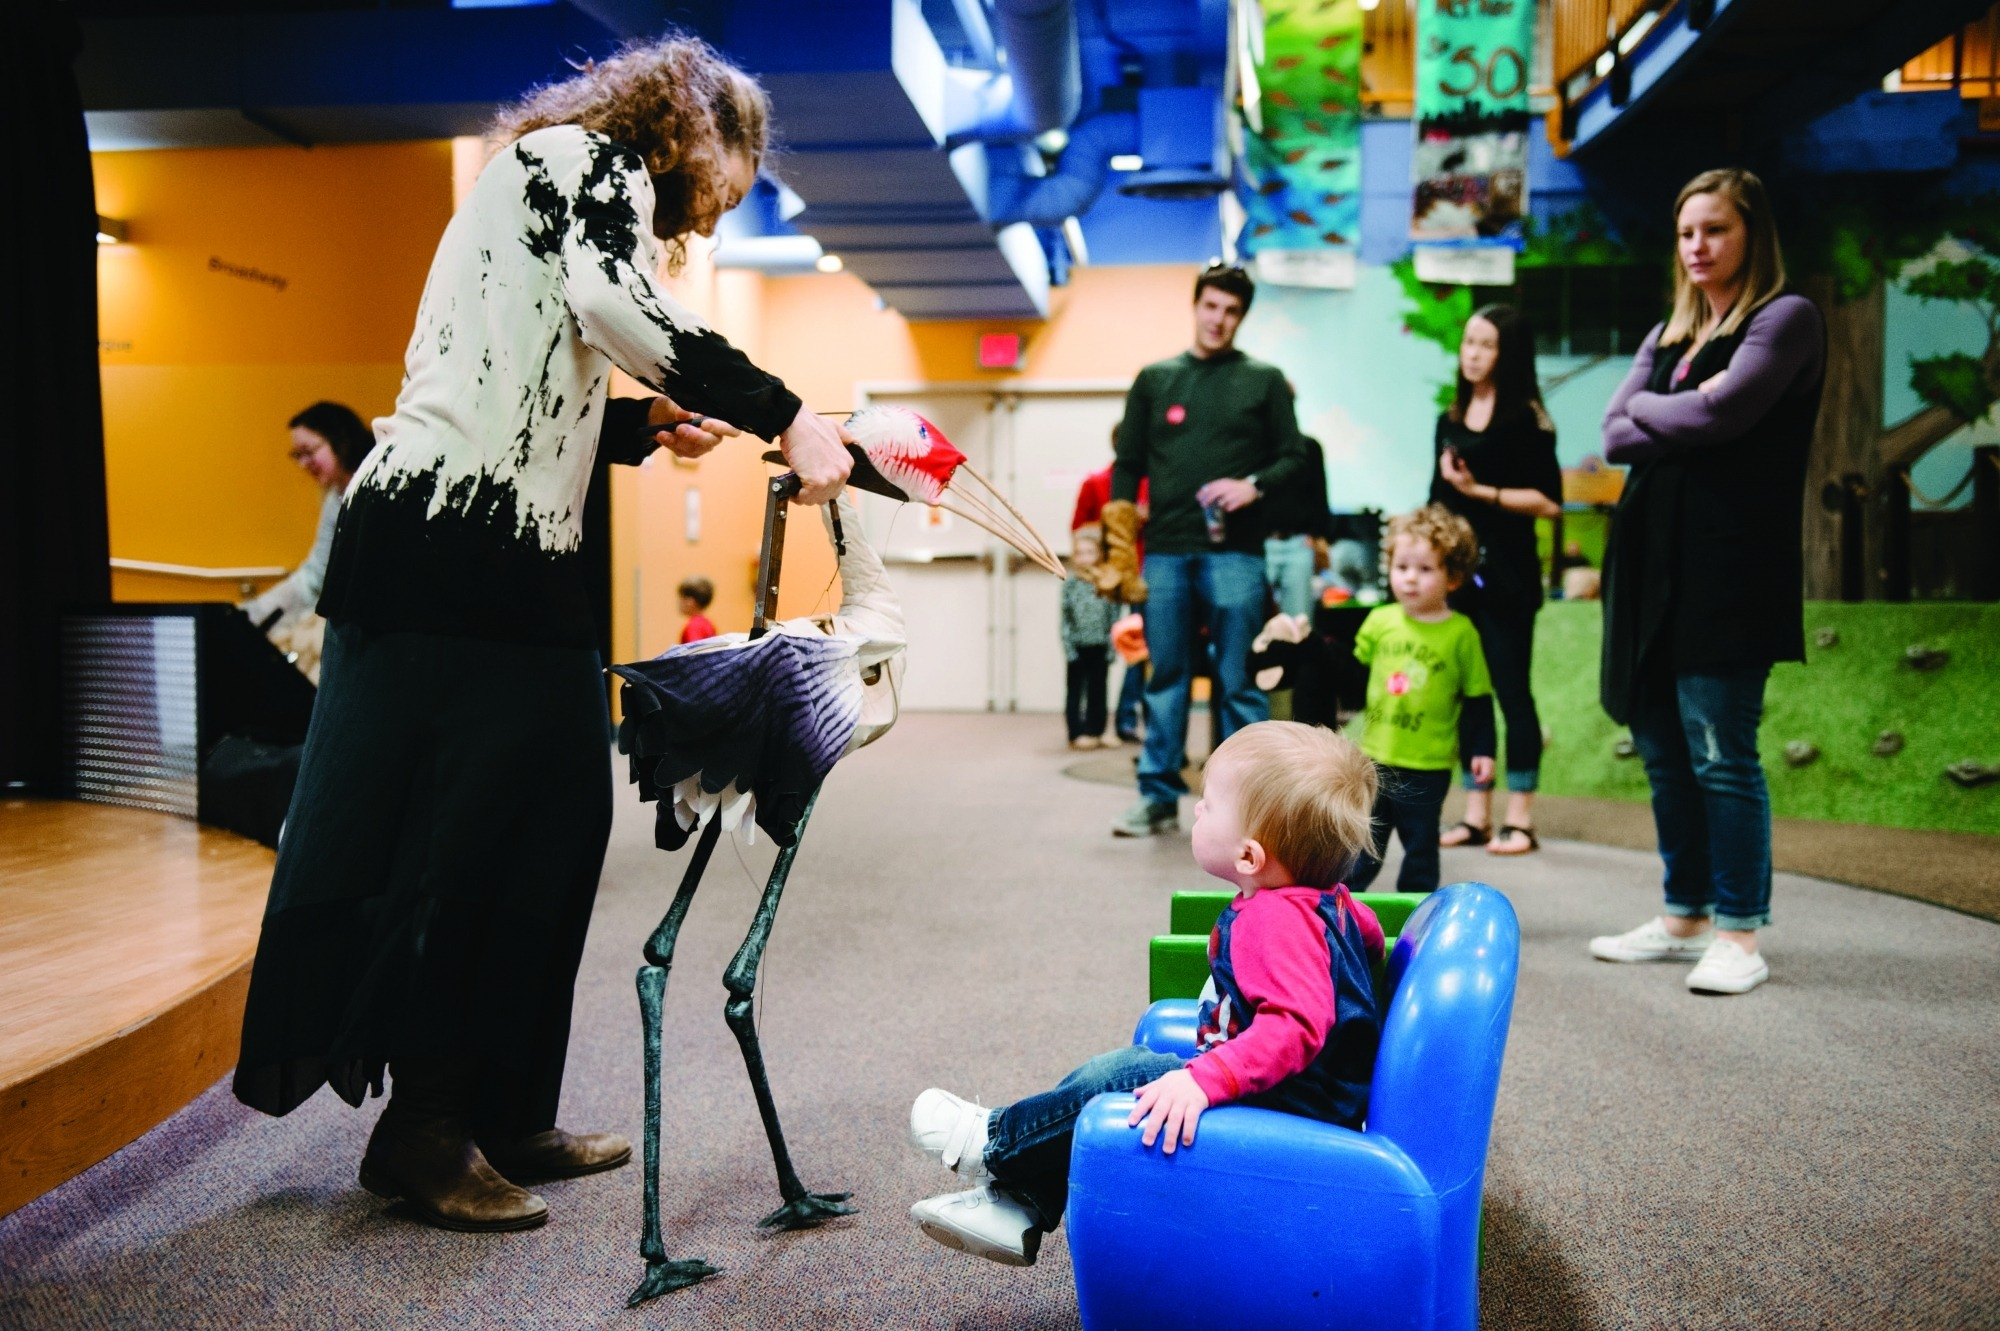 Image of a toddler sitting in a small blue chair that the Lincoln Children's Museum watching Heather Henson demonstrate walking the crane puppet from Crane: On Earth, In Sky